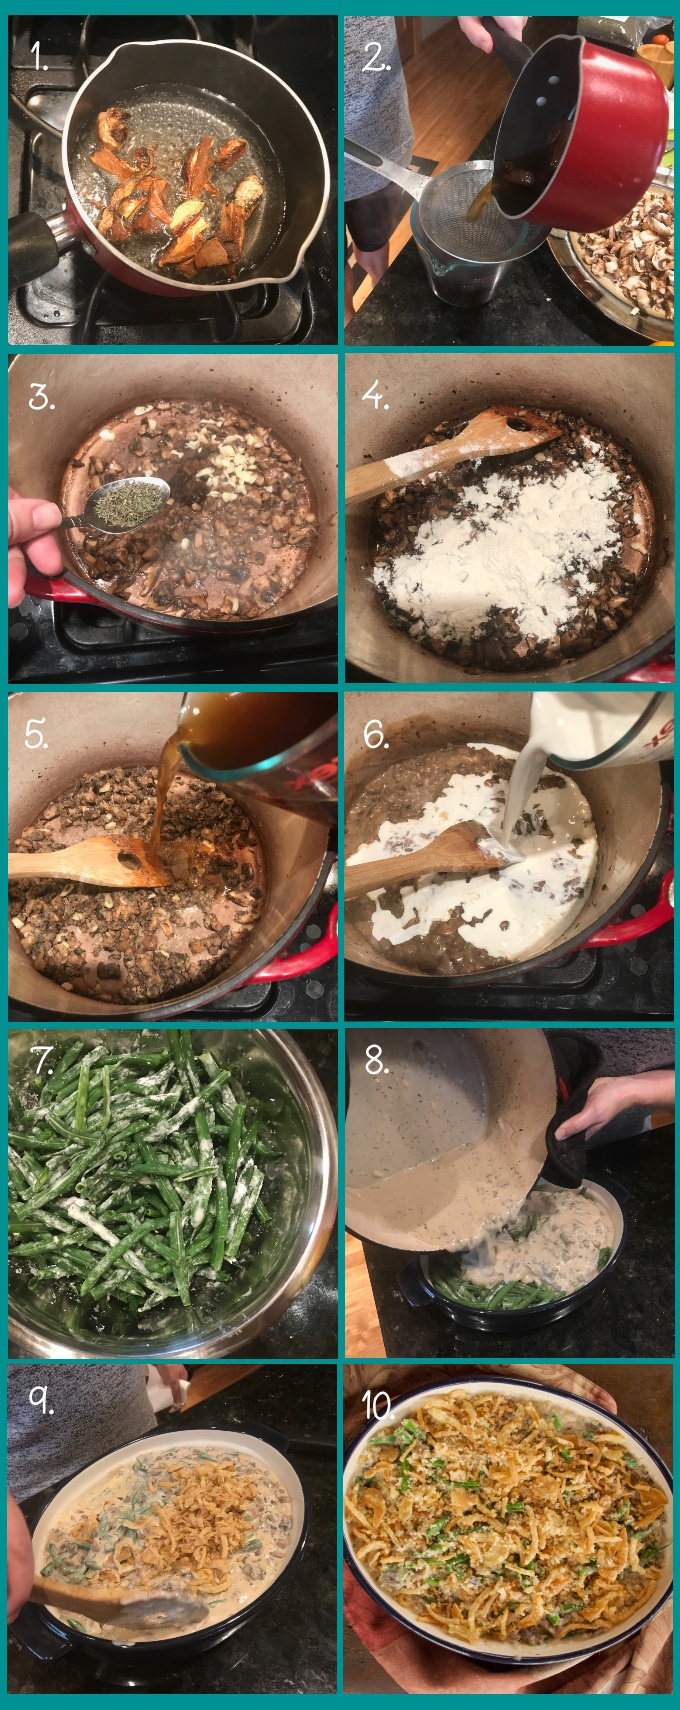 Preparing Make-Ahead Green Bean Casserole. 1.) rehydrate mushrooms. 2.) Drain and chop rehydrated mushrooms (reserve liquid). 3.) Saute mushrooms until they give up their liquid and the liquid evaporates. 4.) Add garlic and thyme. 5.) Make roux. 6.) Add cream and wine. 7.) Mix cornstarch with green beans. 8.) Add cream of mushroom soup to beans. 9.) Add topping. 10.) Bake.